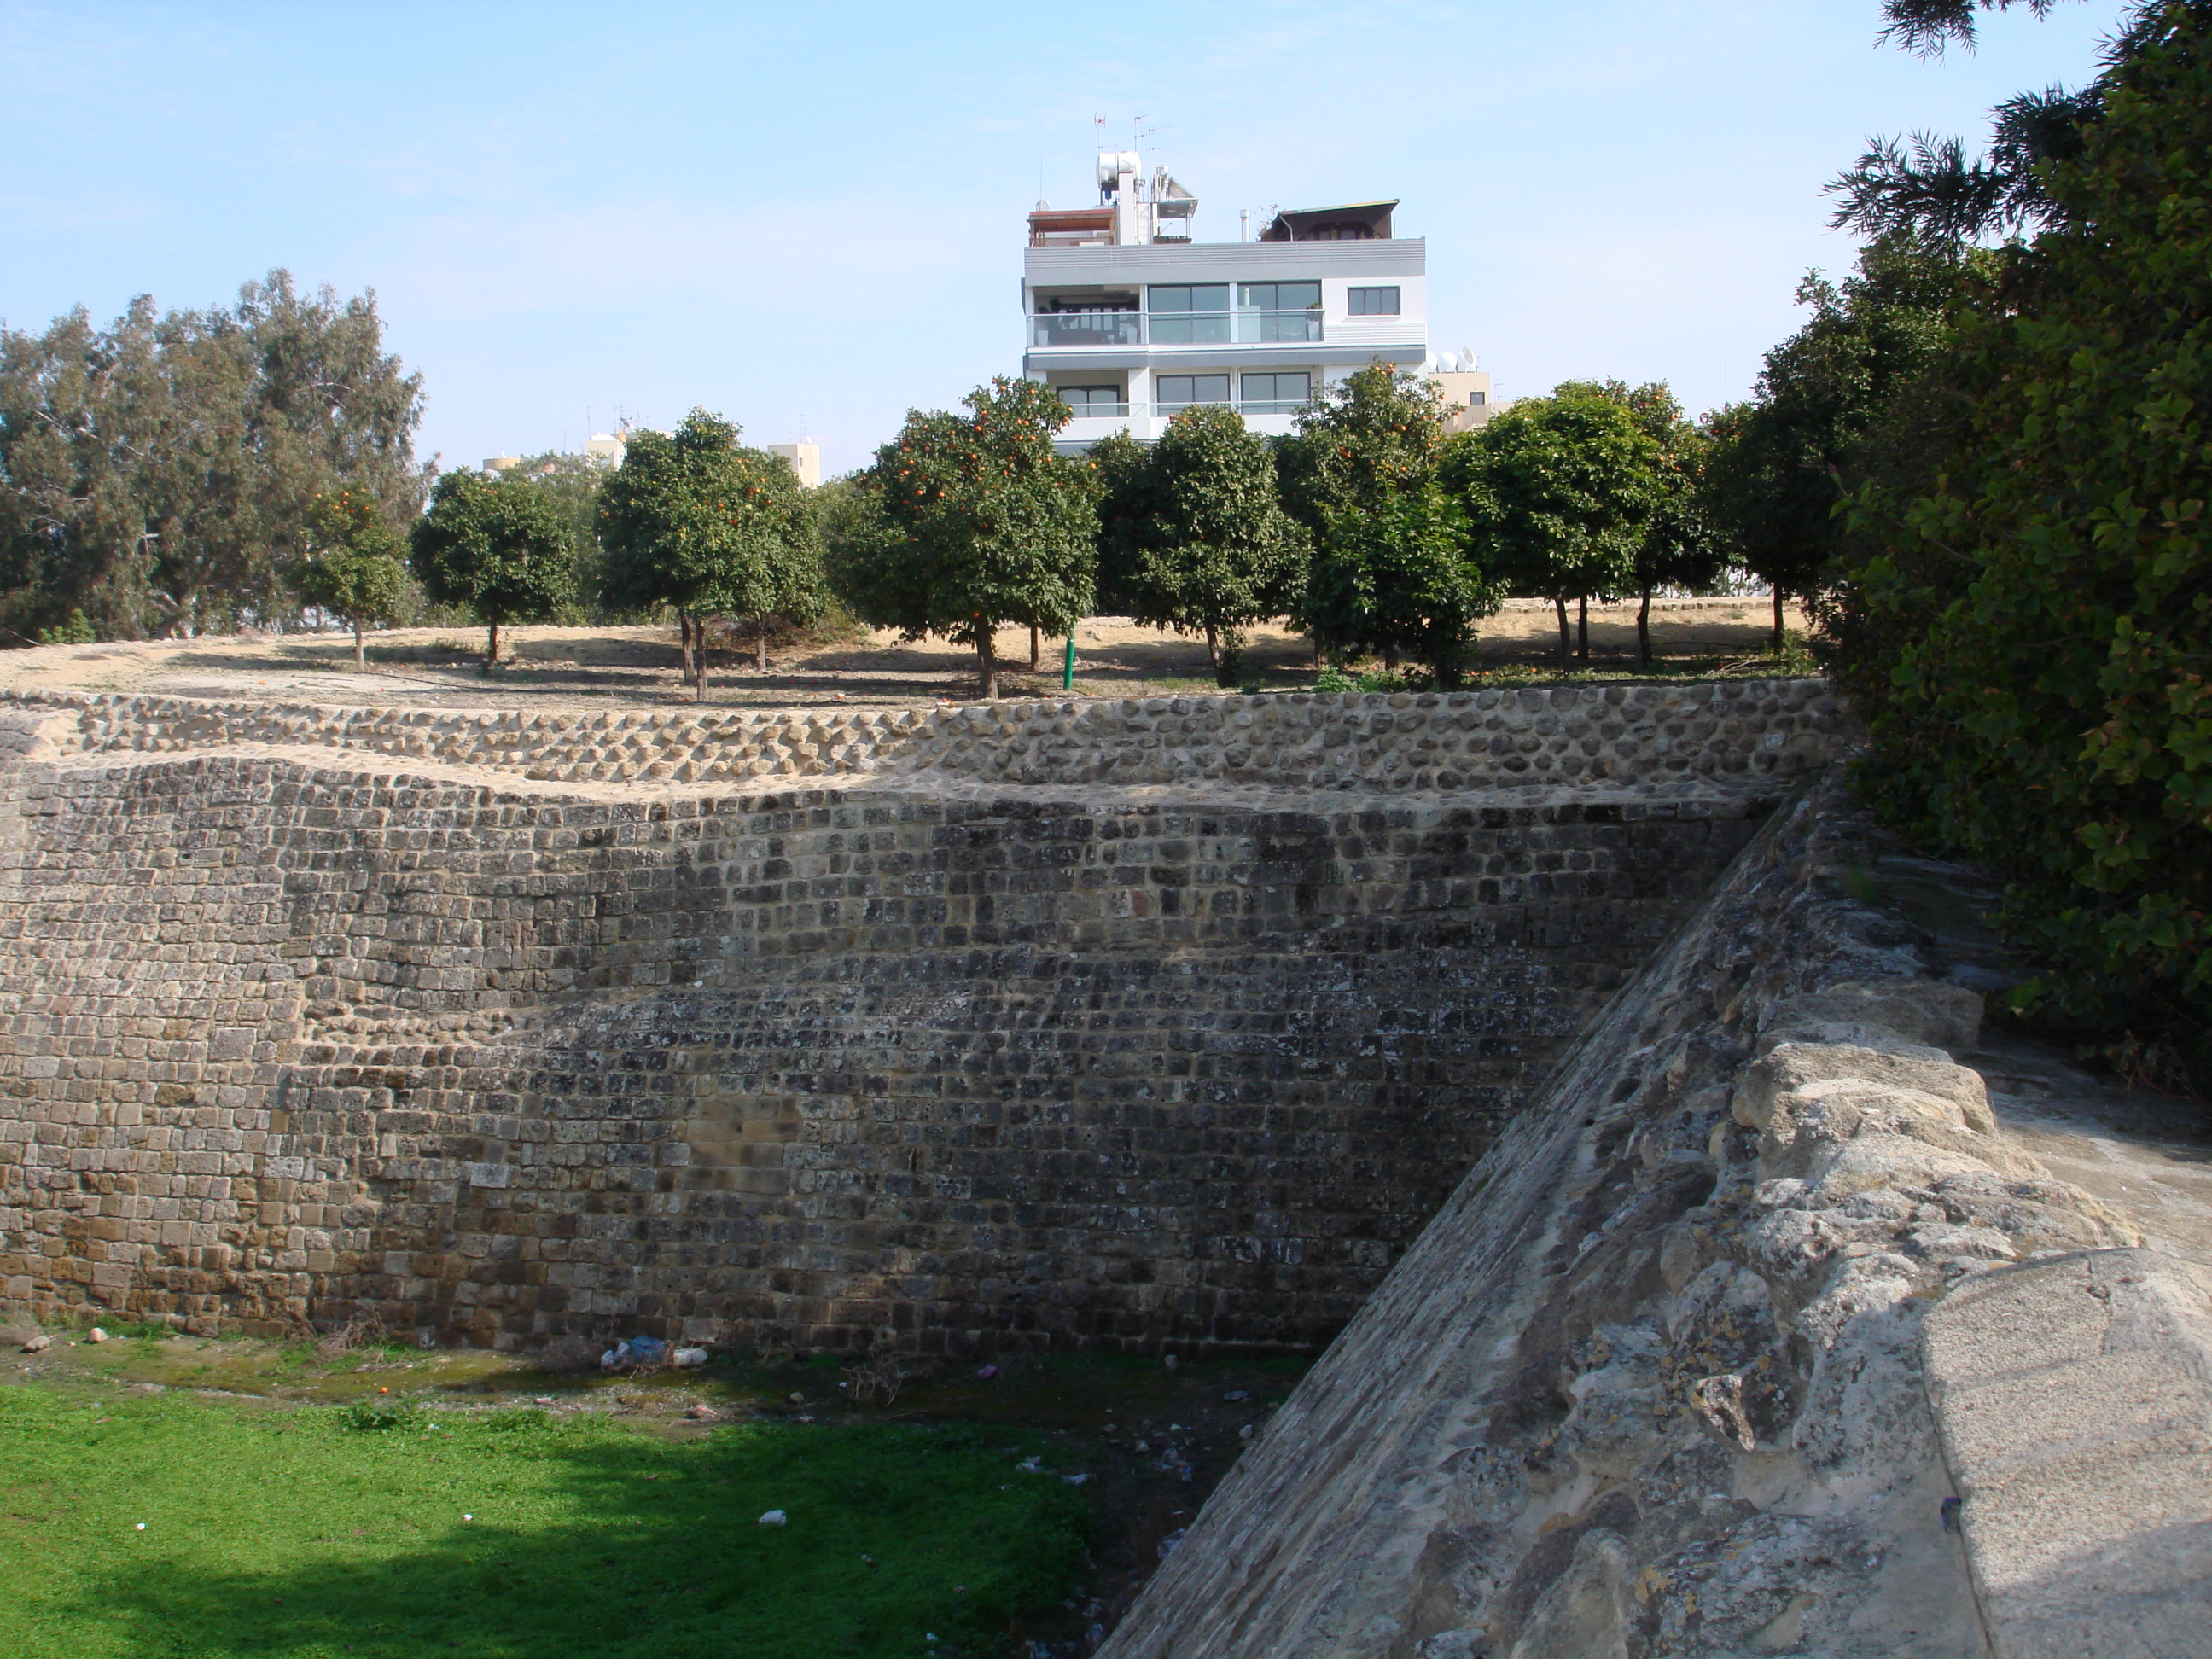 Wall of the old city, Nicosia